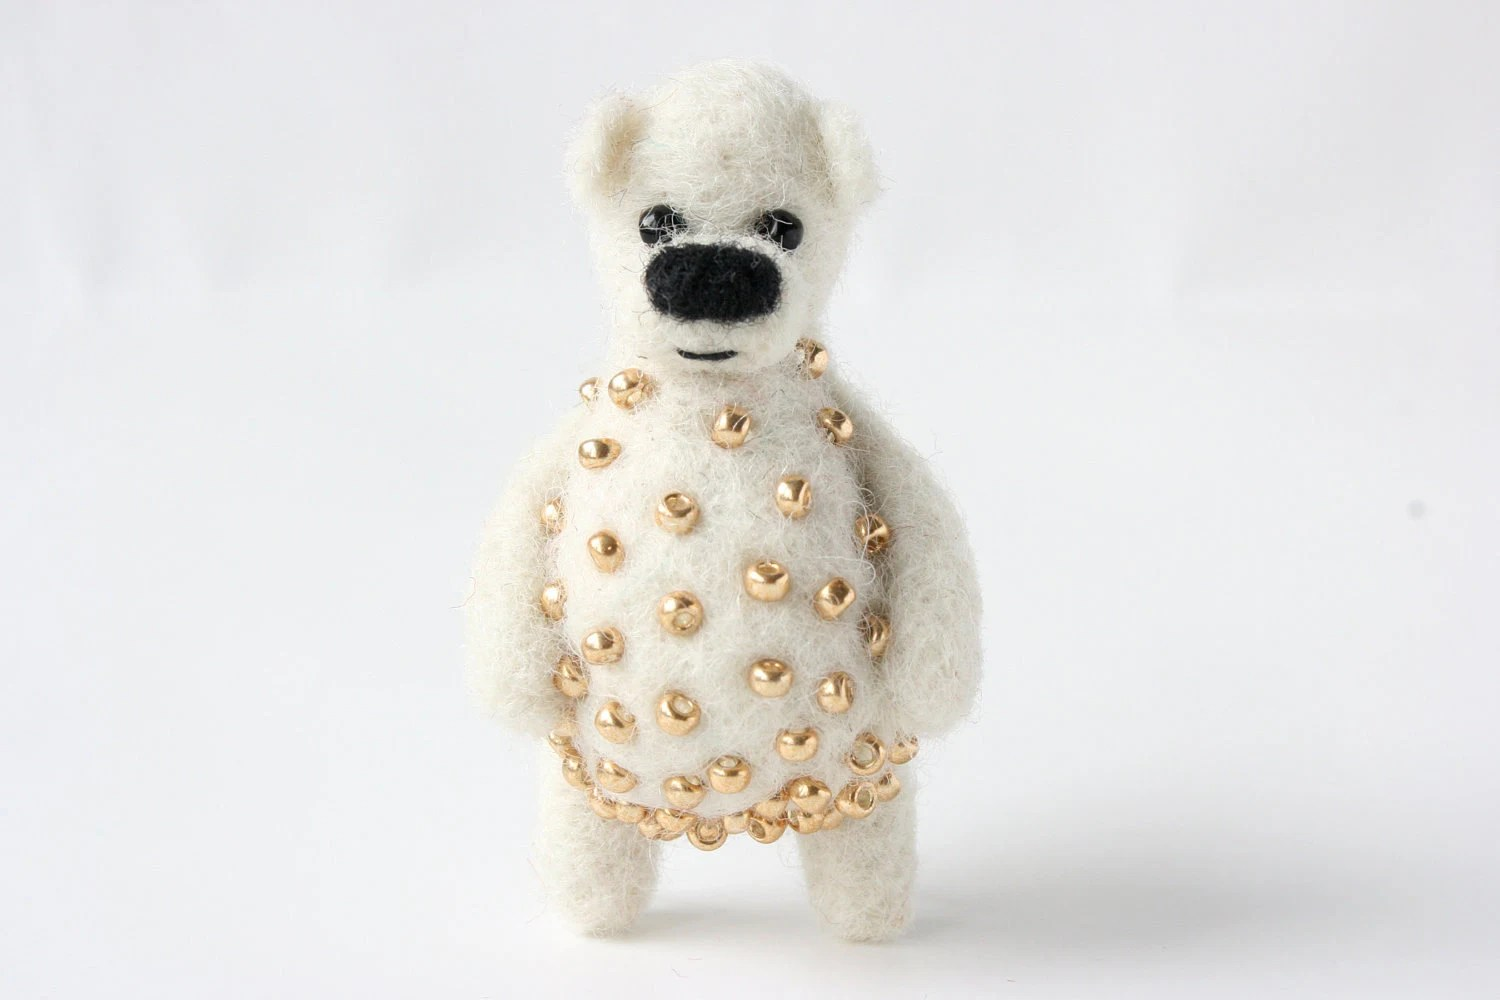 White bear with golden beads, brooch - unpetitours